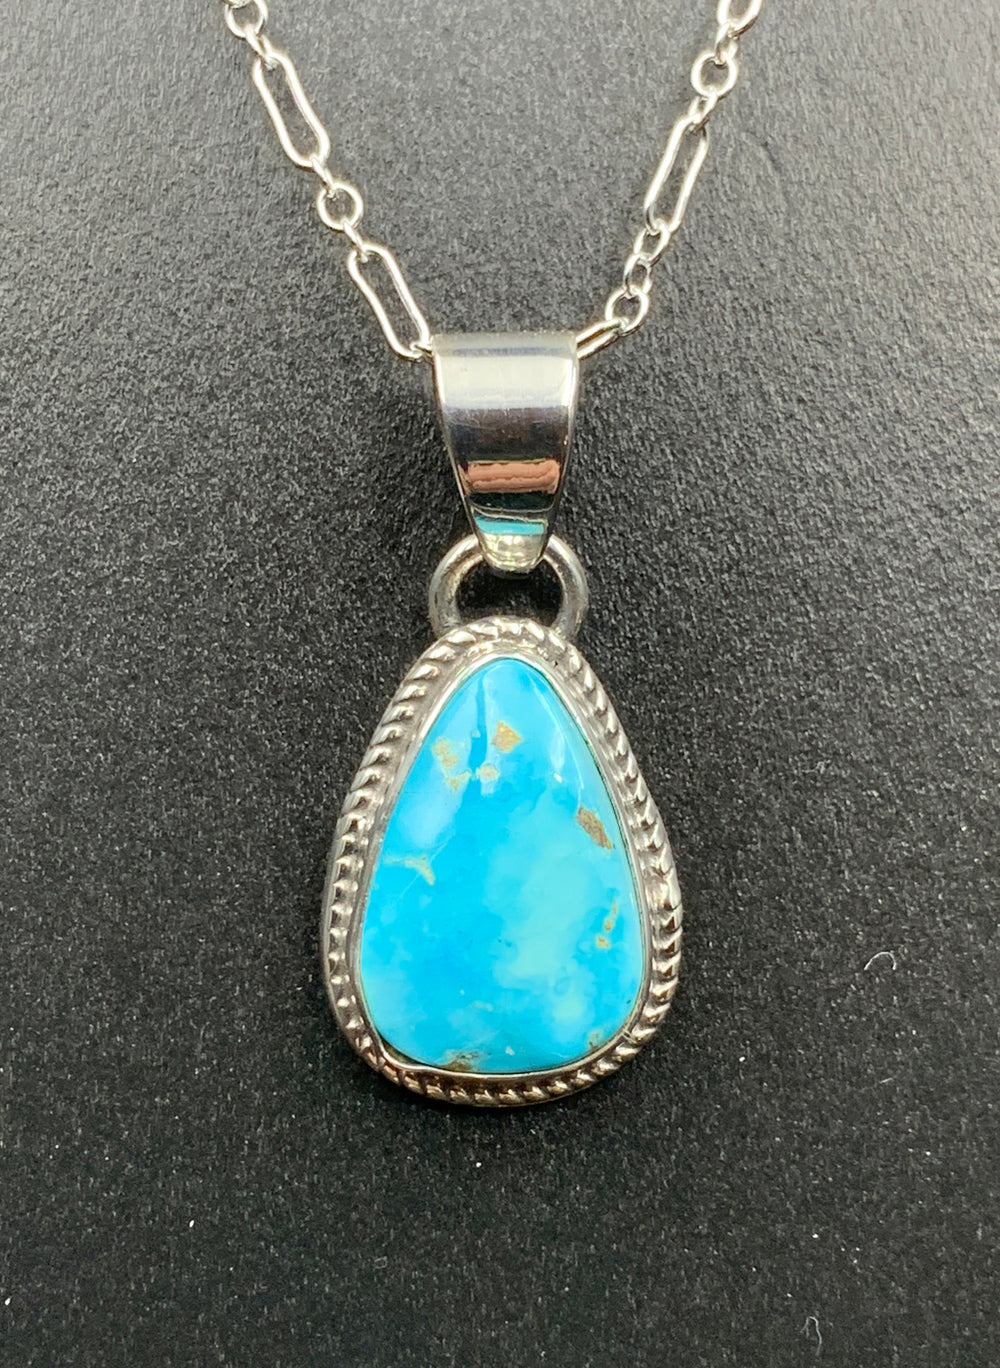 Kingman Turquoise #12 Natural Sterling Silver Pendant on 18